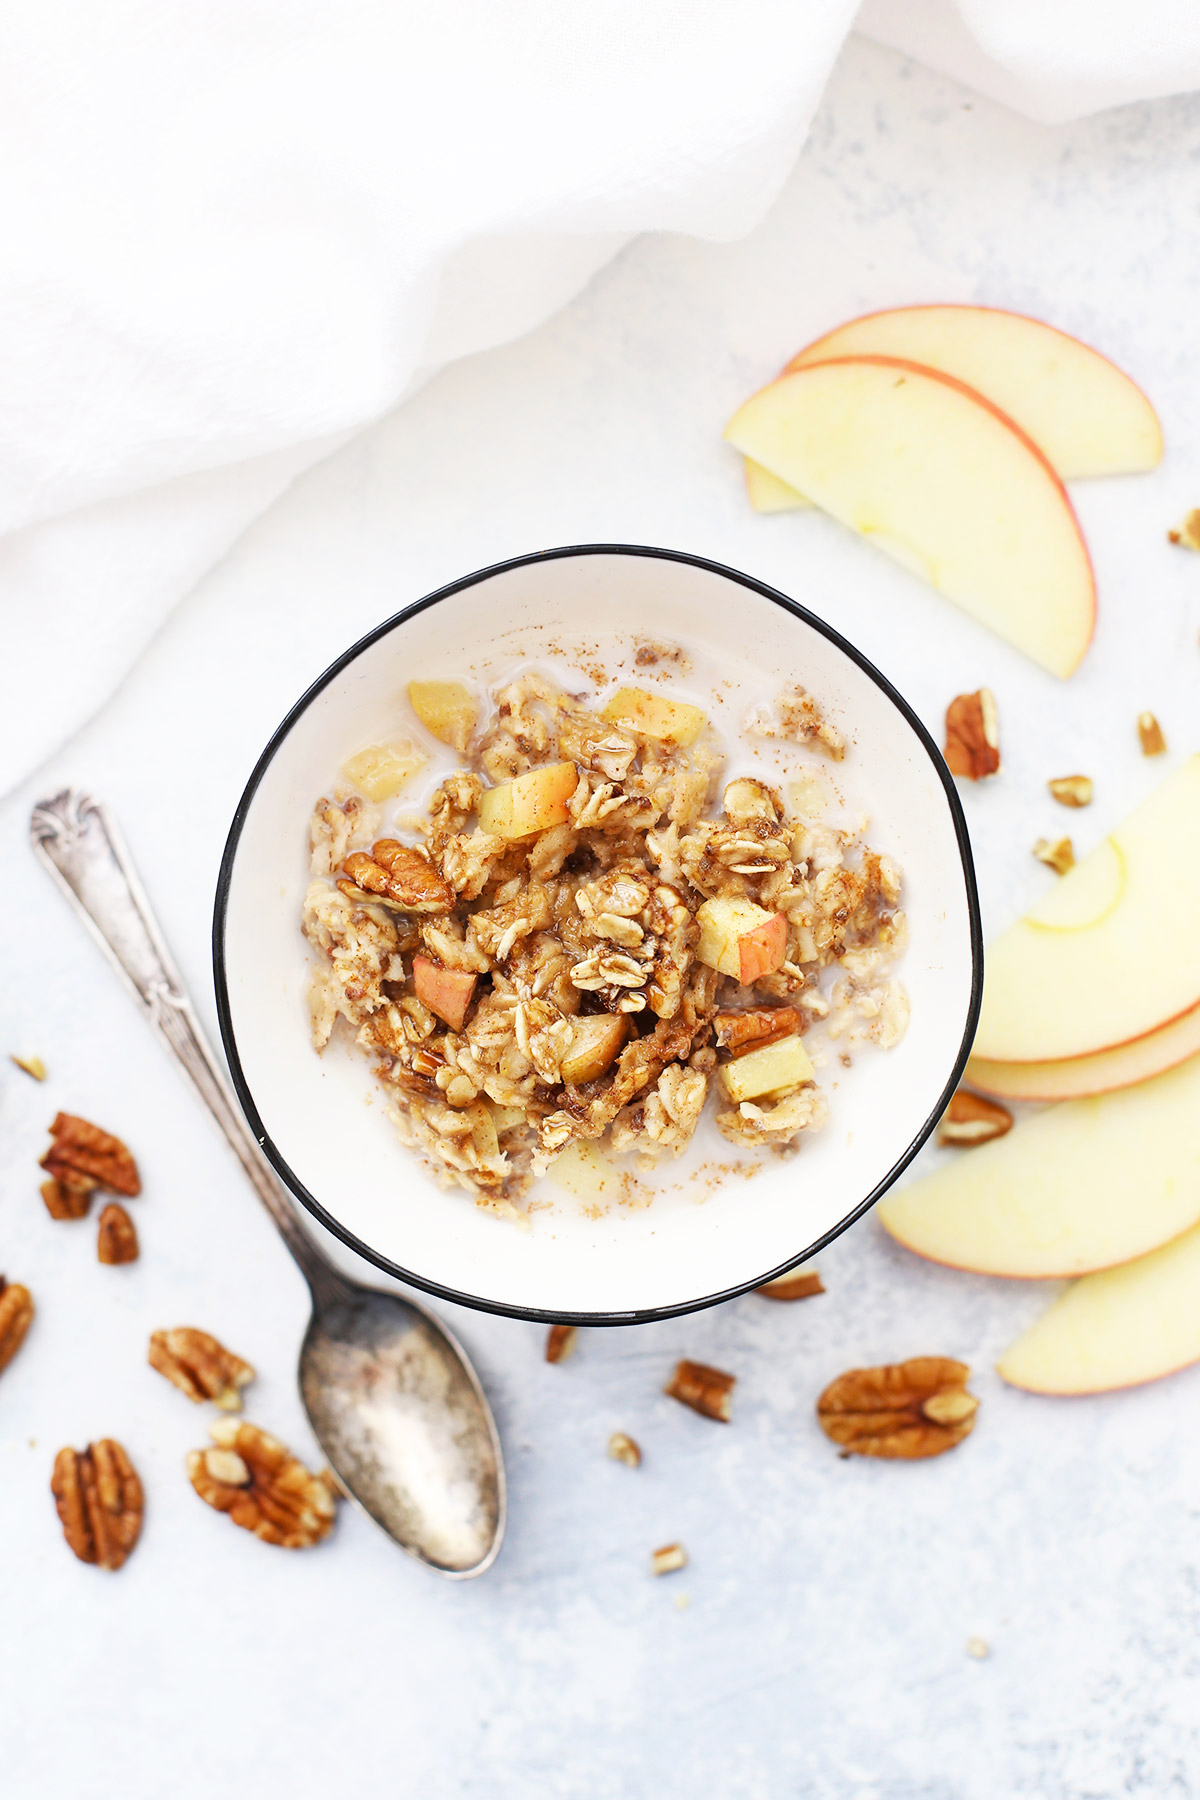 Bowl of Cinnamon Apple Baked Oatmeal with milk.